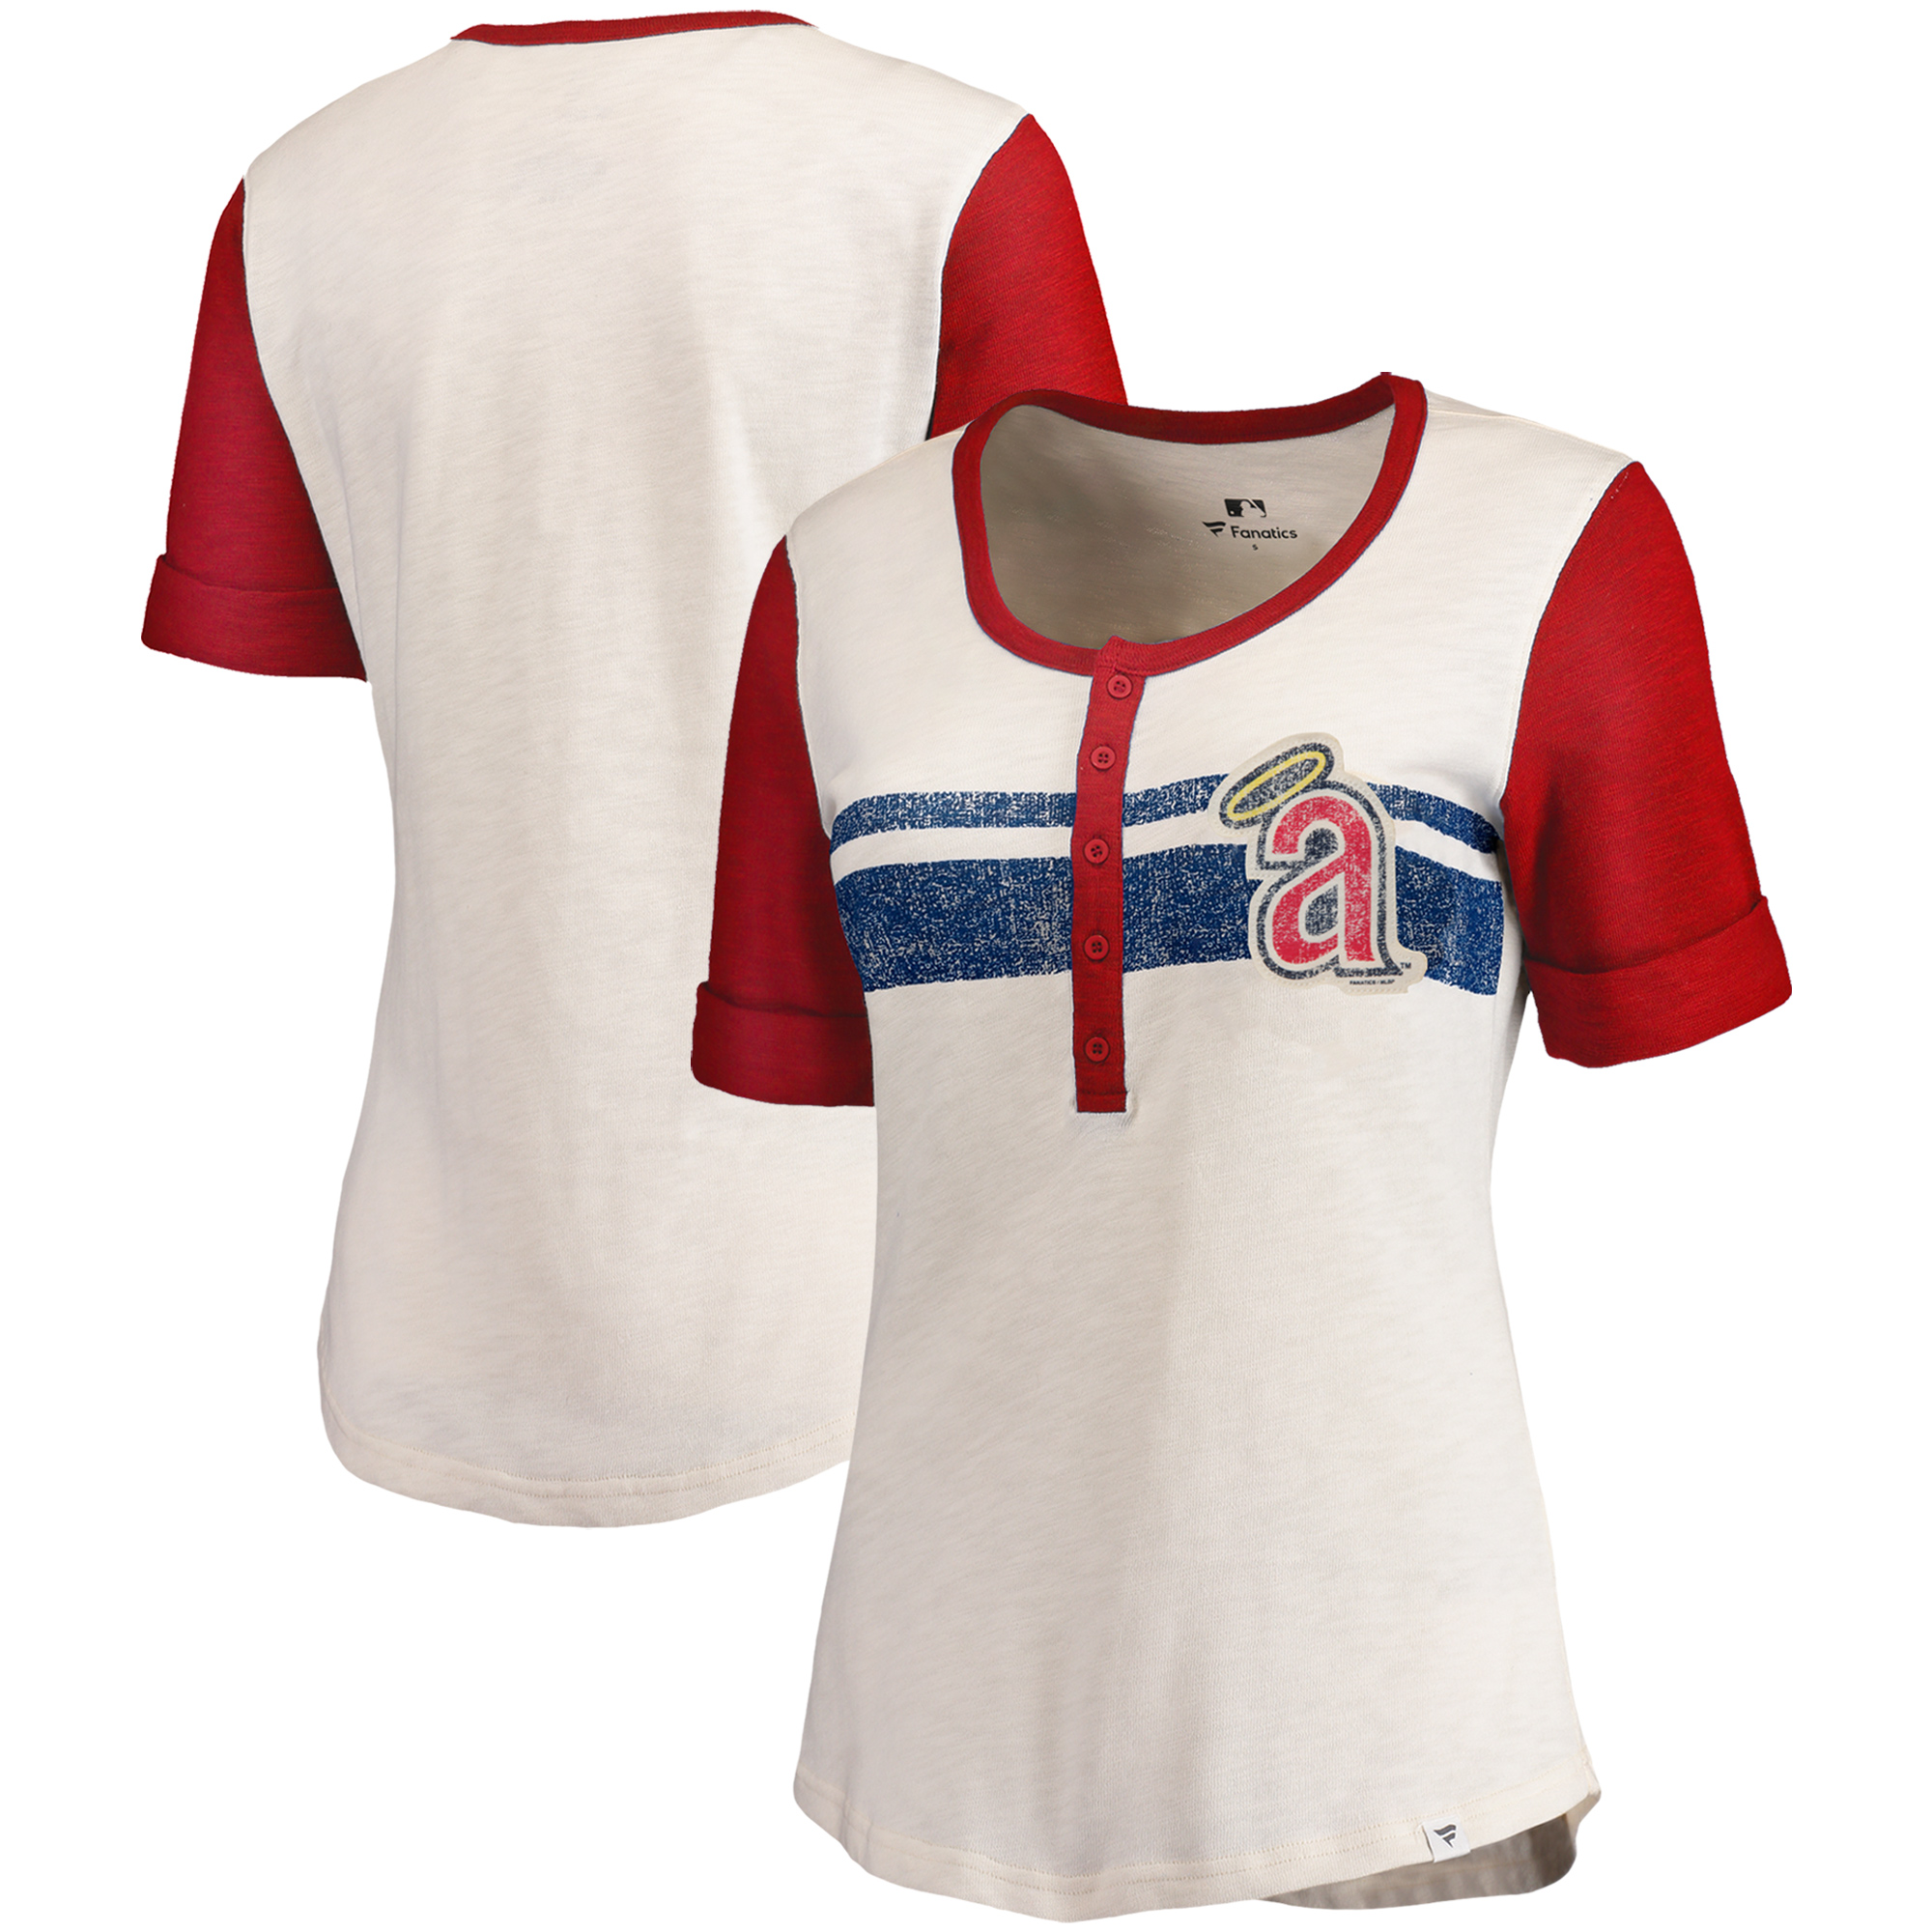 Los Angeles Angels Fanatics Branded Women's True Classics Henley T-Shirt - Cream/Red